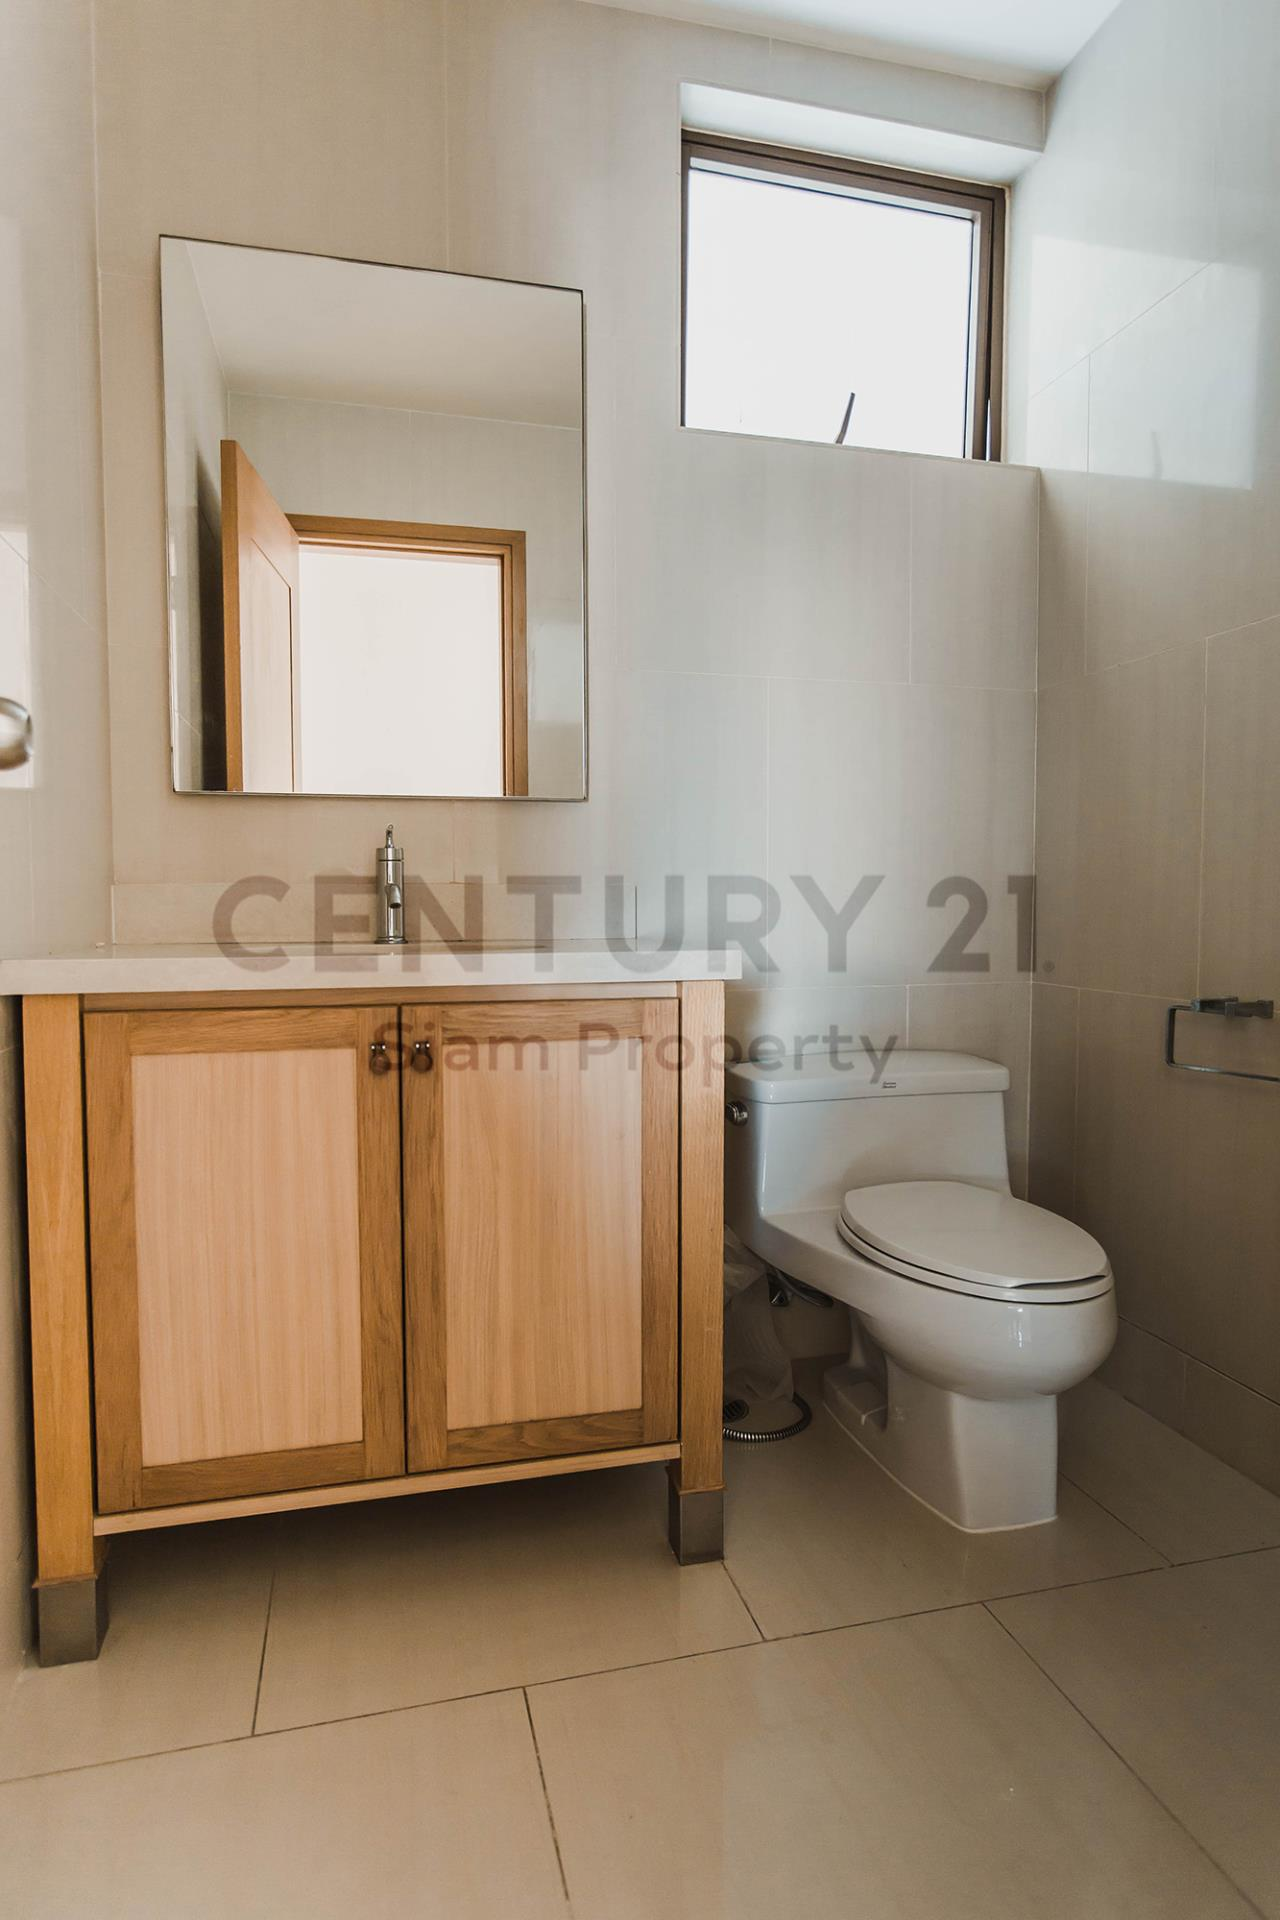 Century21 Siam Property Agency's The Emporio Place 12